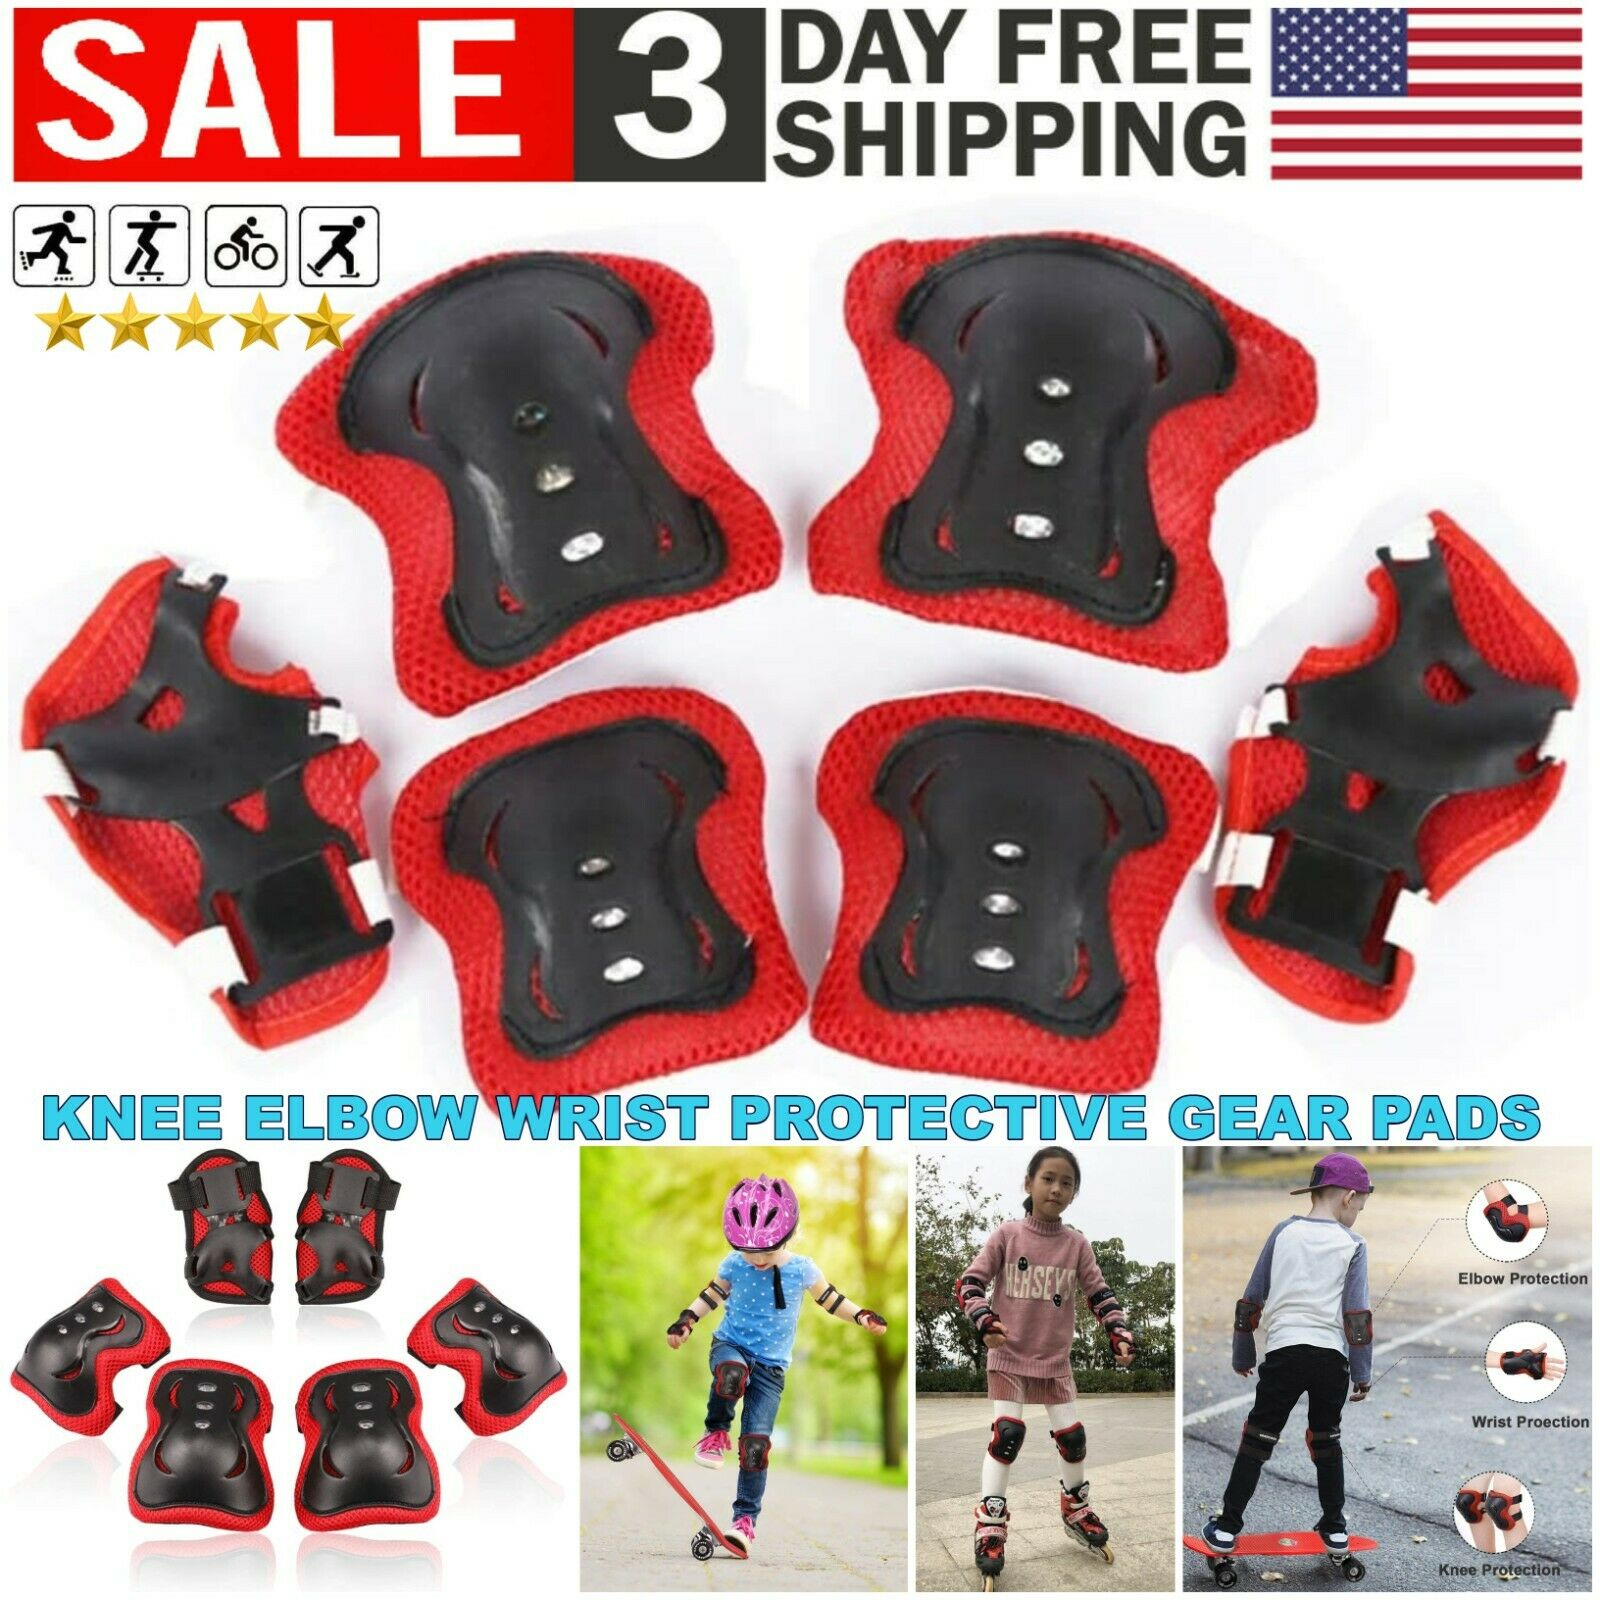 Adults Teens 6PCS Sport Protective Gear Set Knee Pads Kids Knee Elbow Wrist Braces Children Roller Skating Skateboard Sports Safety Knee Support Elbow Pads Wrist Guards Protector for Cycling,BMX Bike